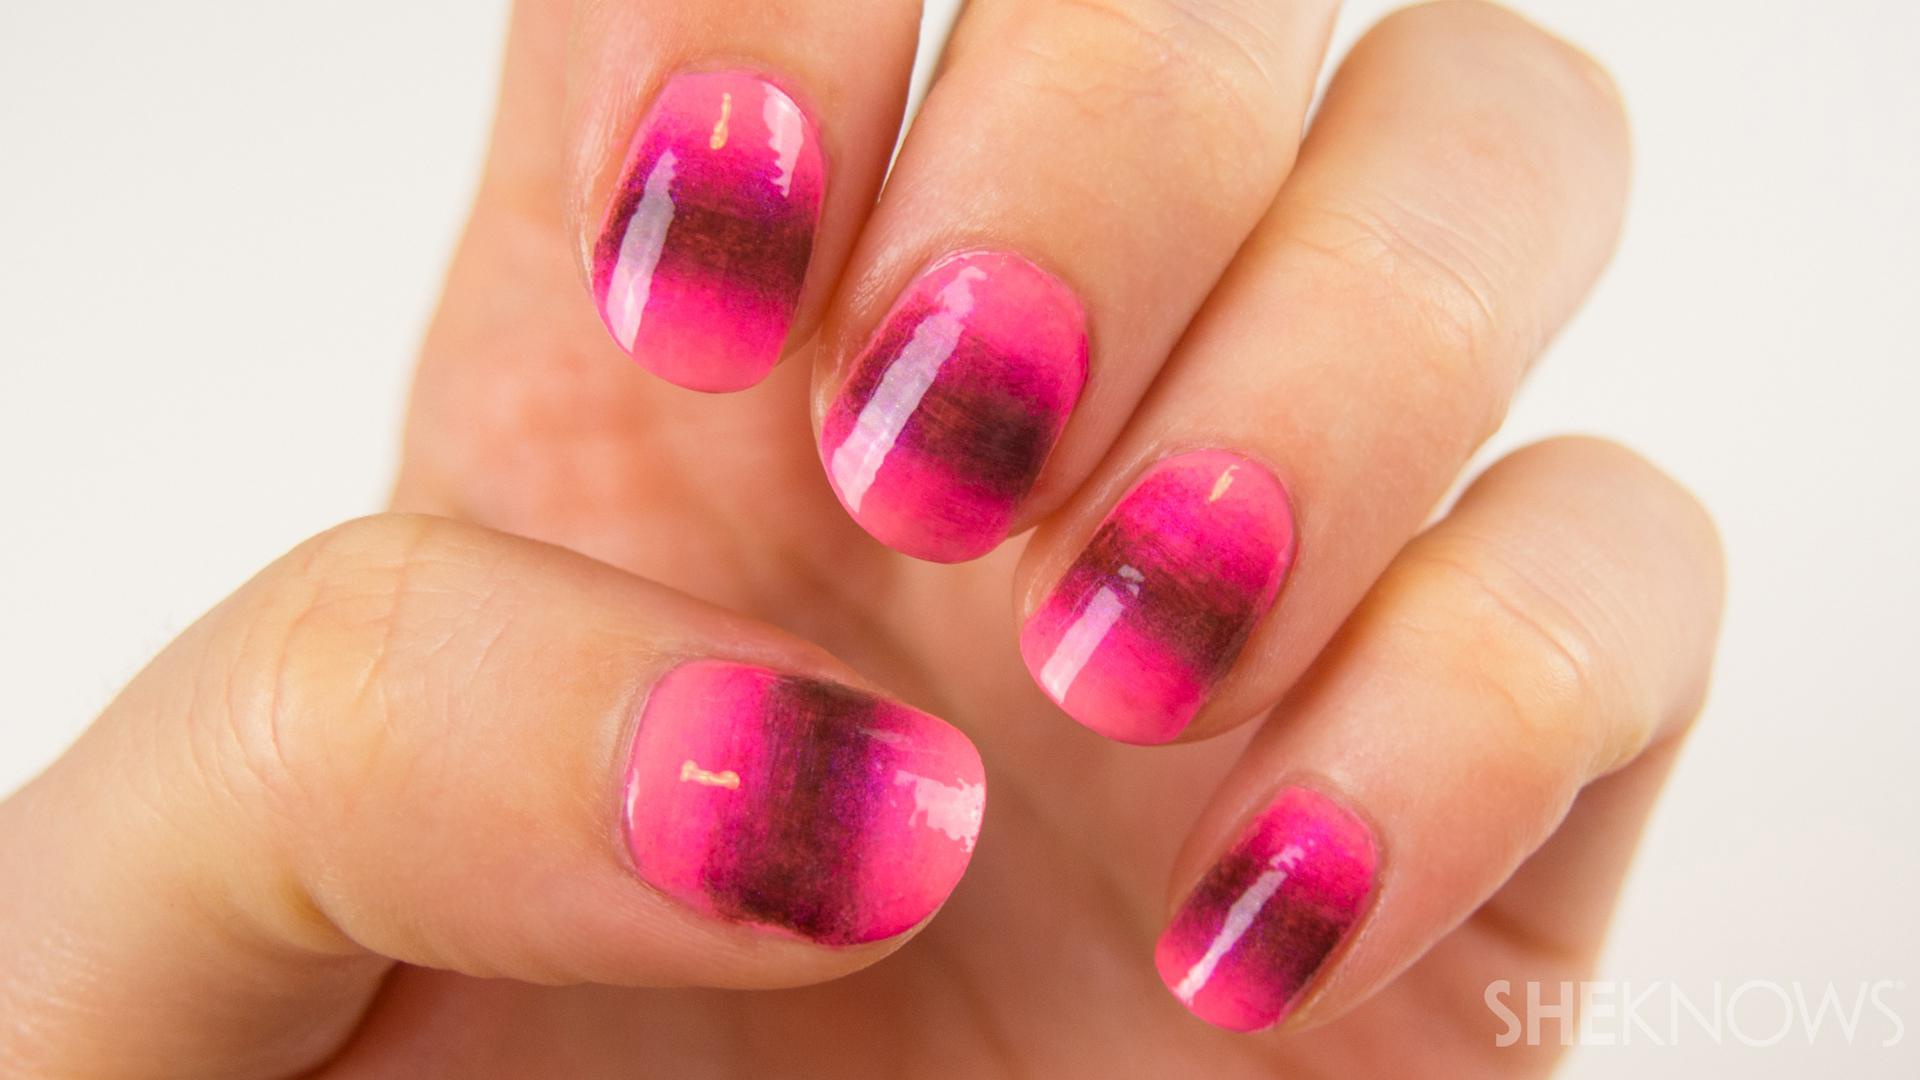 Nail art tutorial: A new take on the ombre nail design